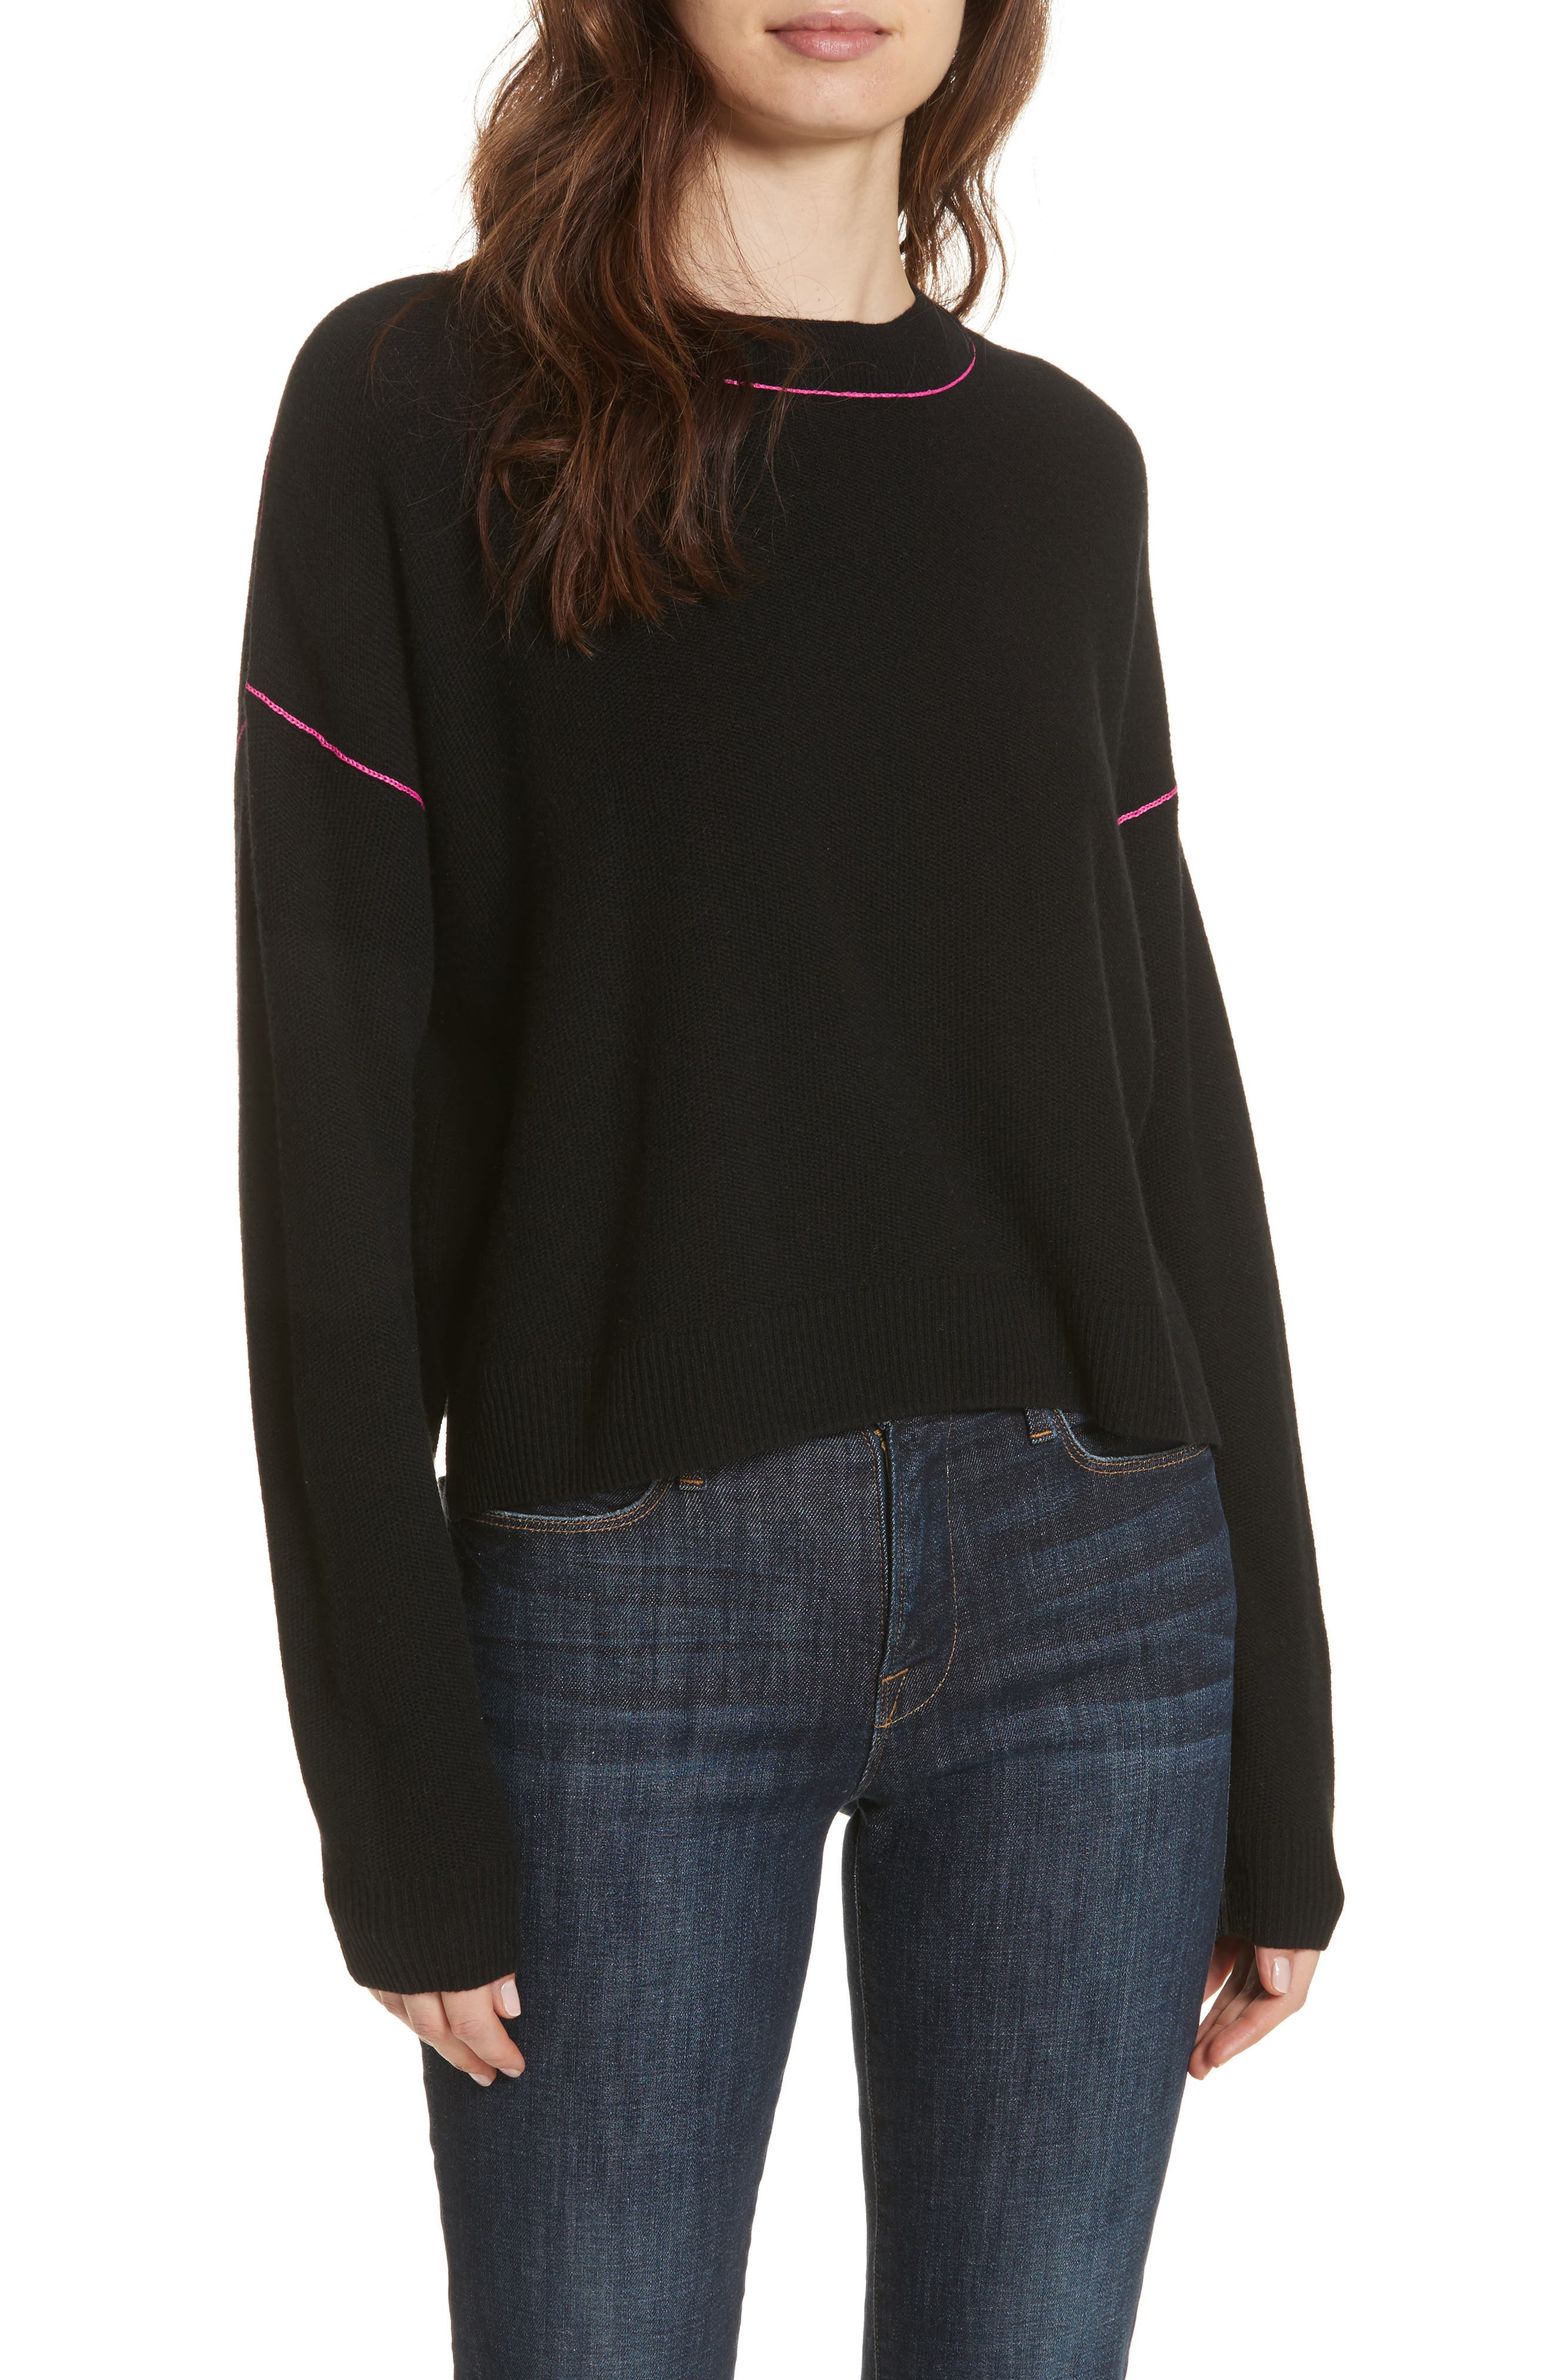 Joie Benin Wool & Cashmere Sweater